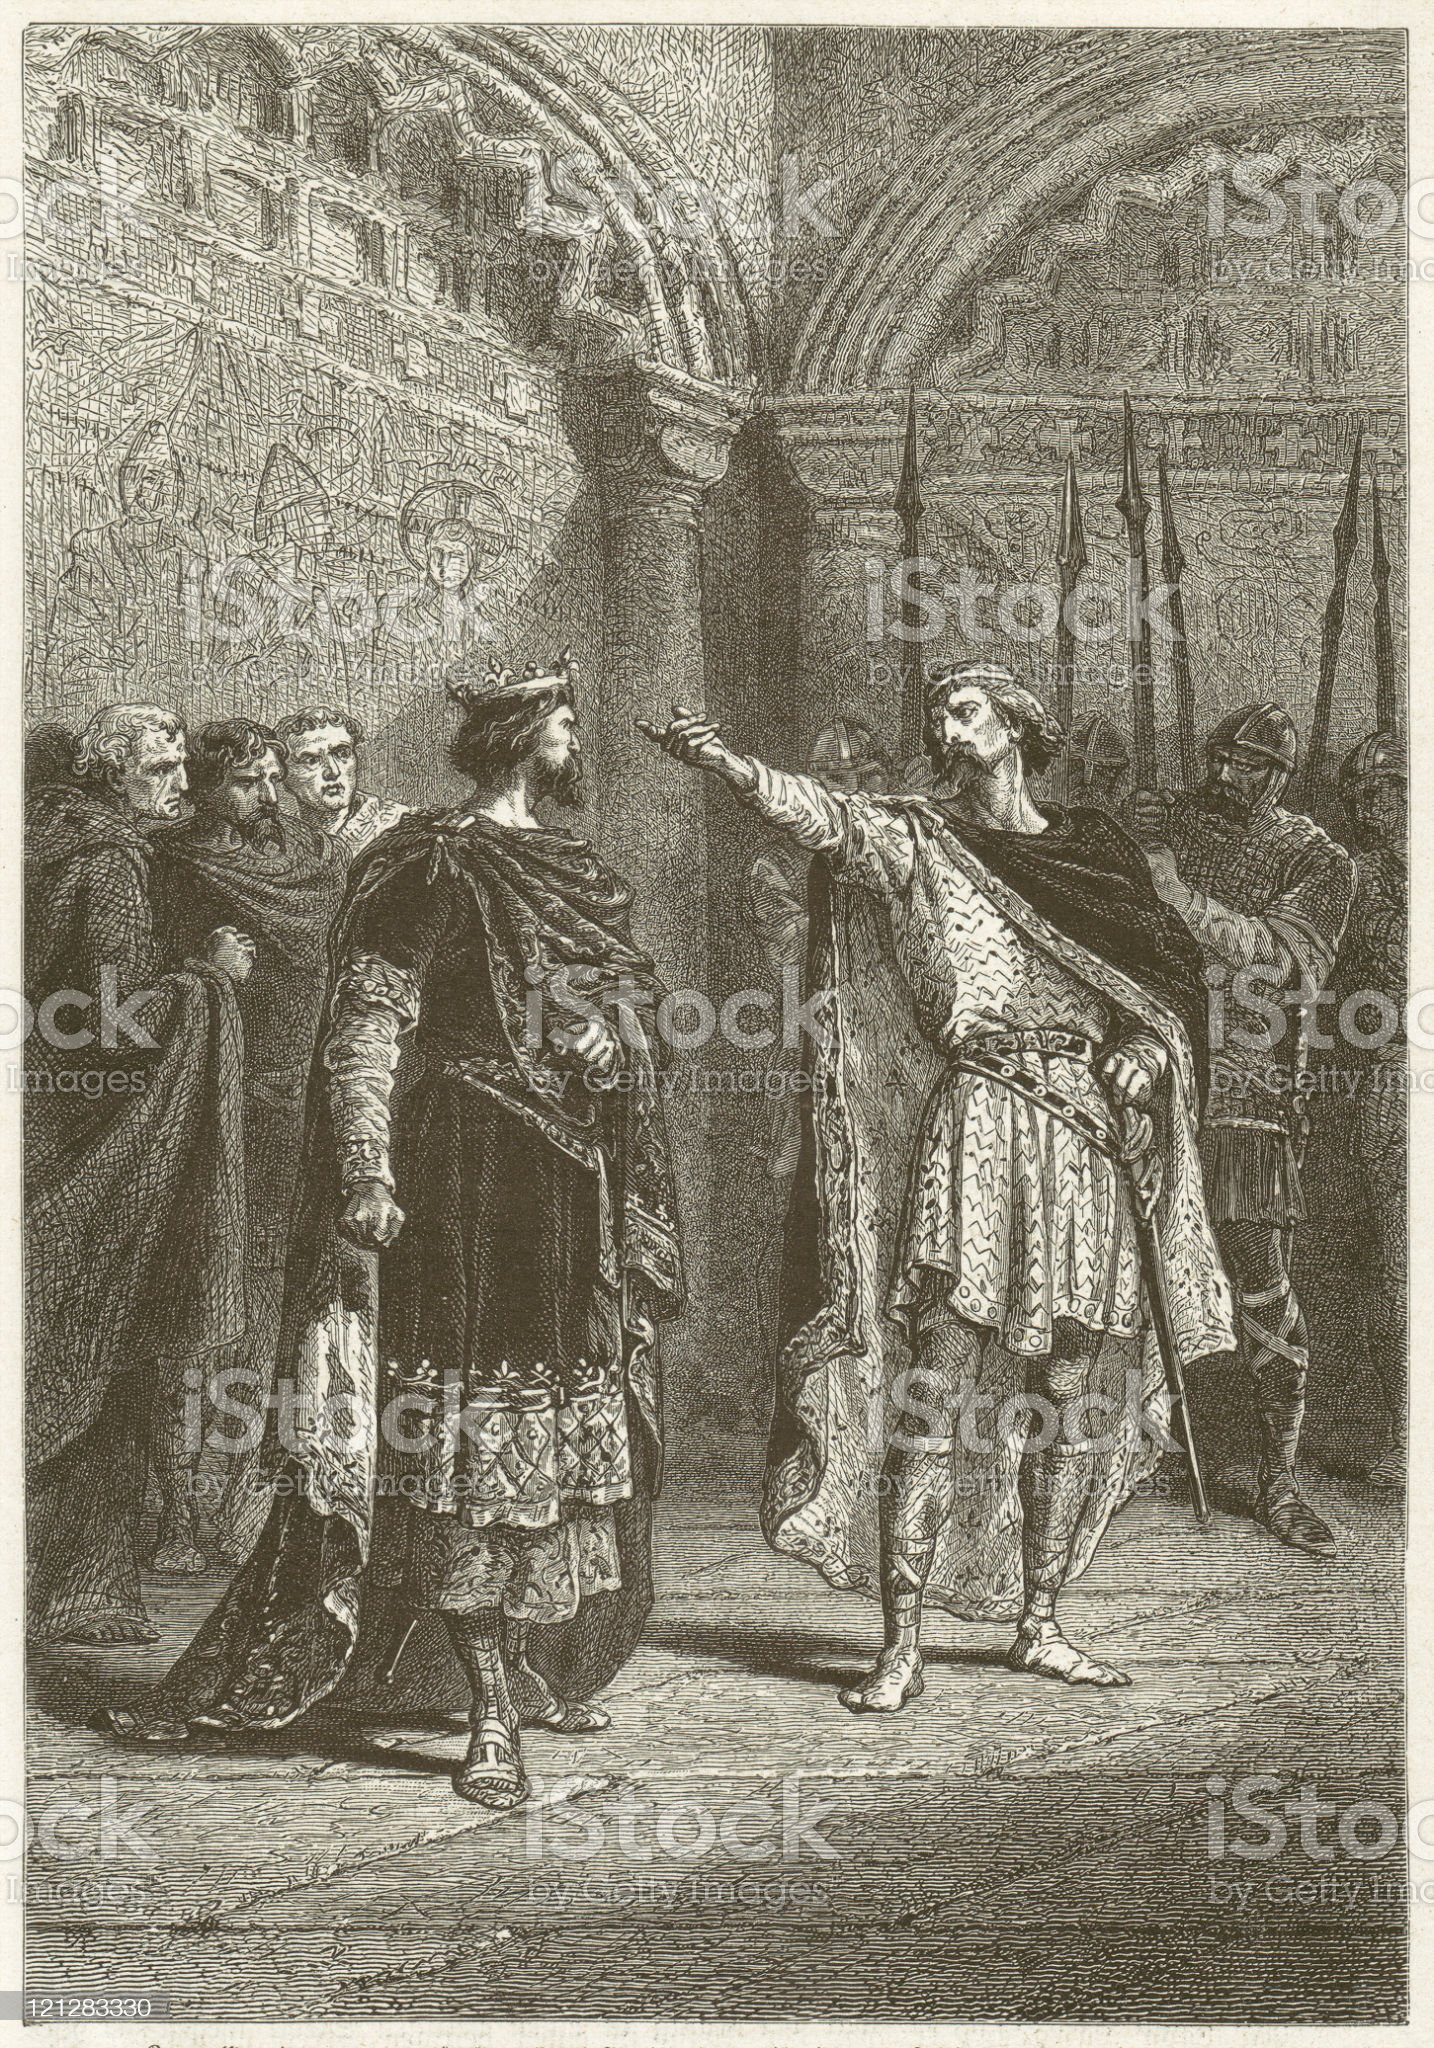 Hugh Capet and Adalbert of Perigord (987), published in 1881 royalty-free stock vector art